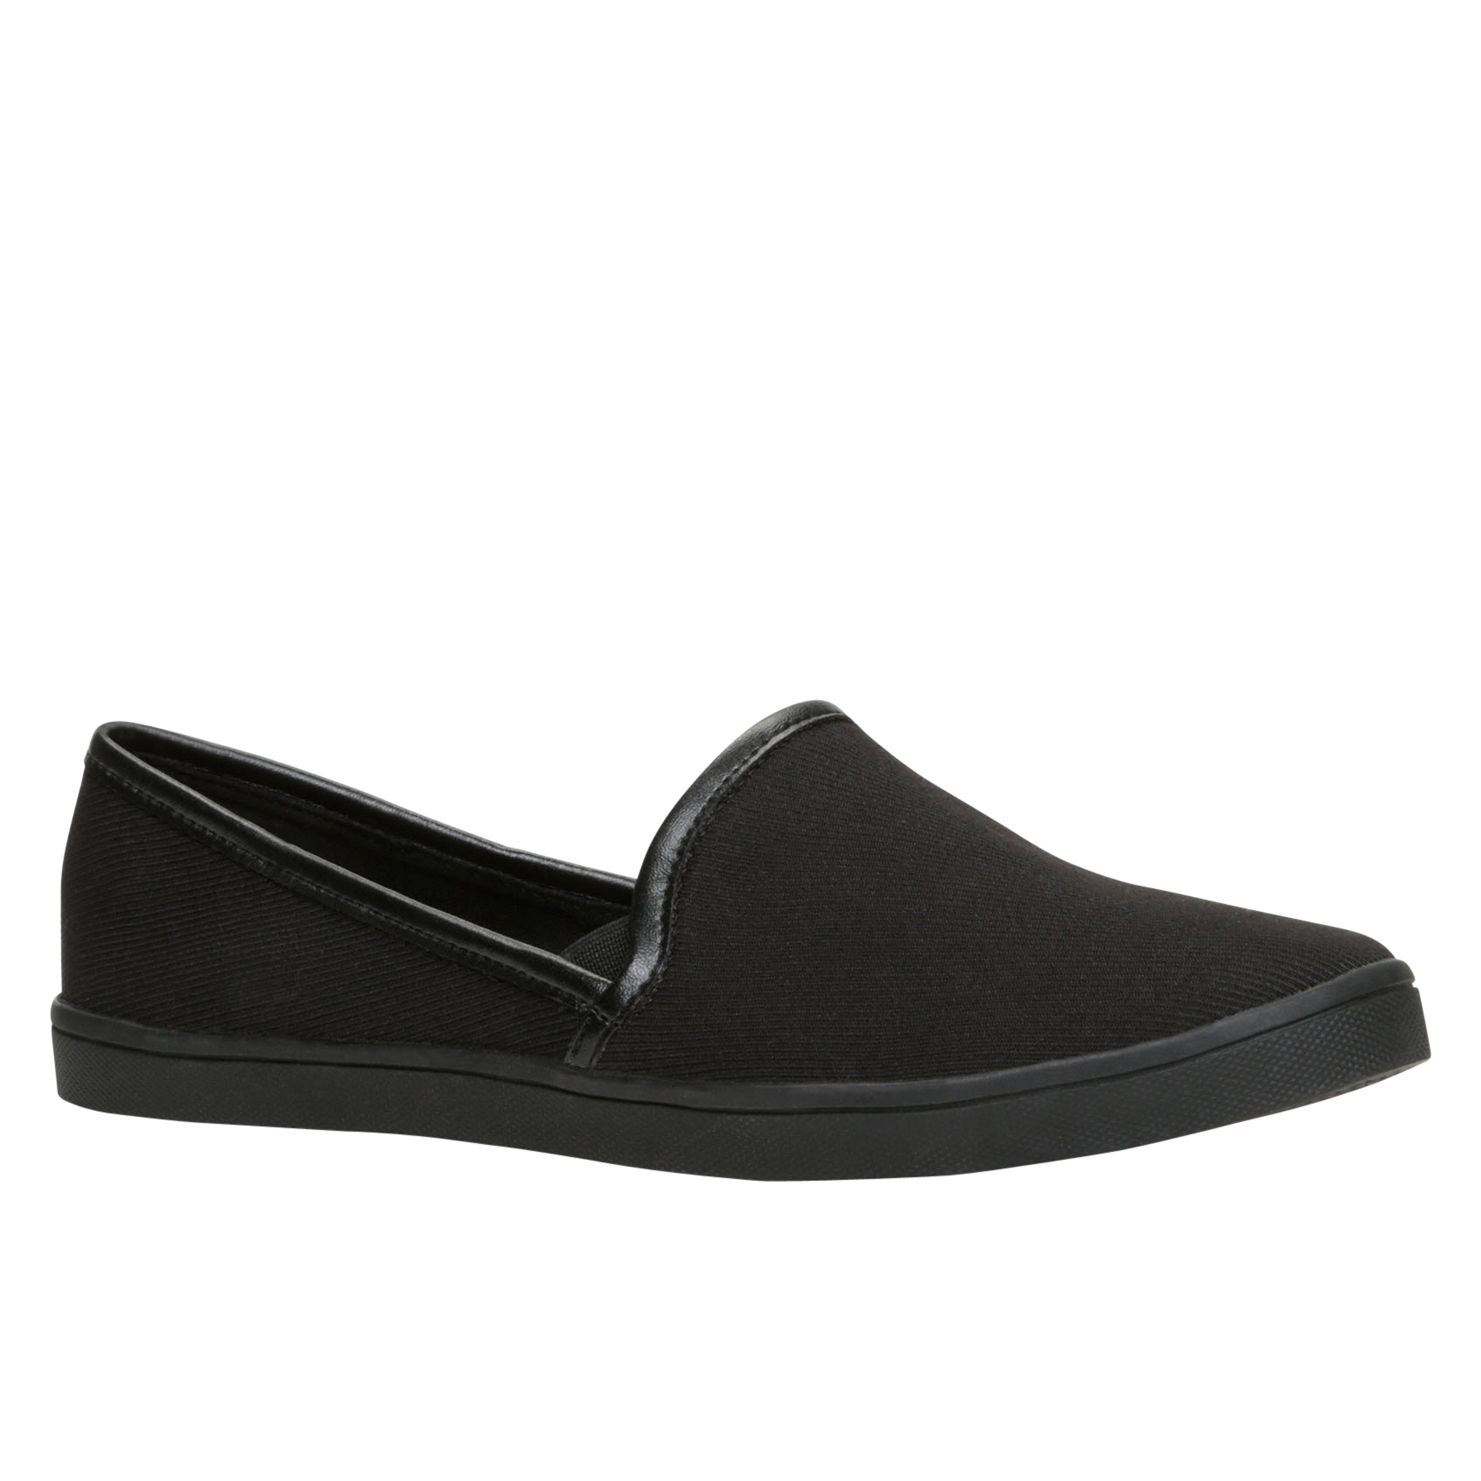 Struz round toe loafer shoes